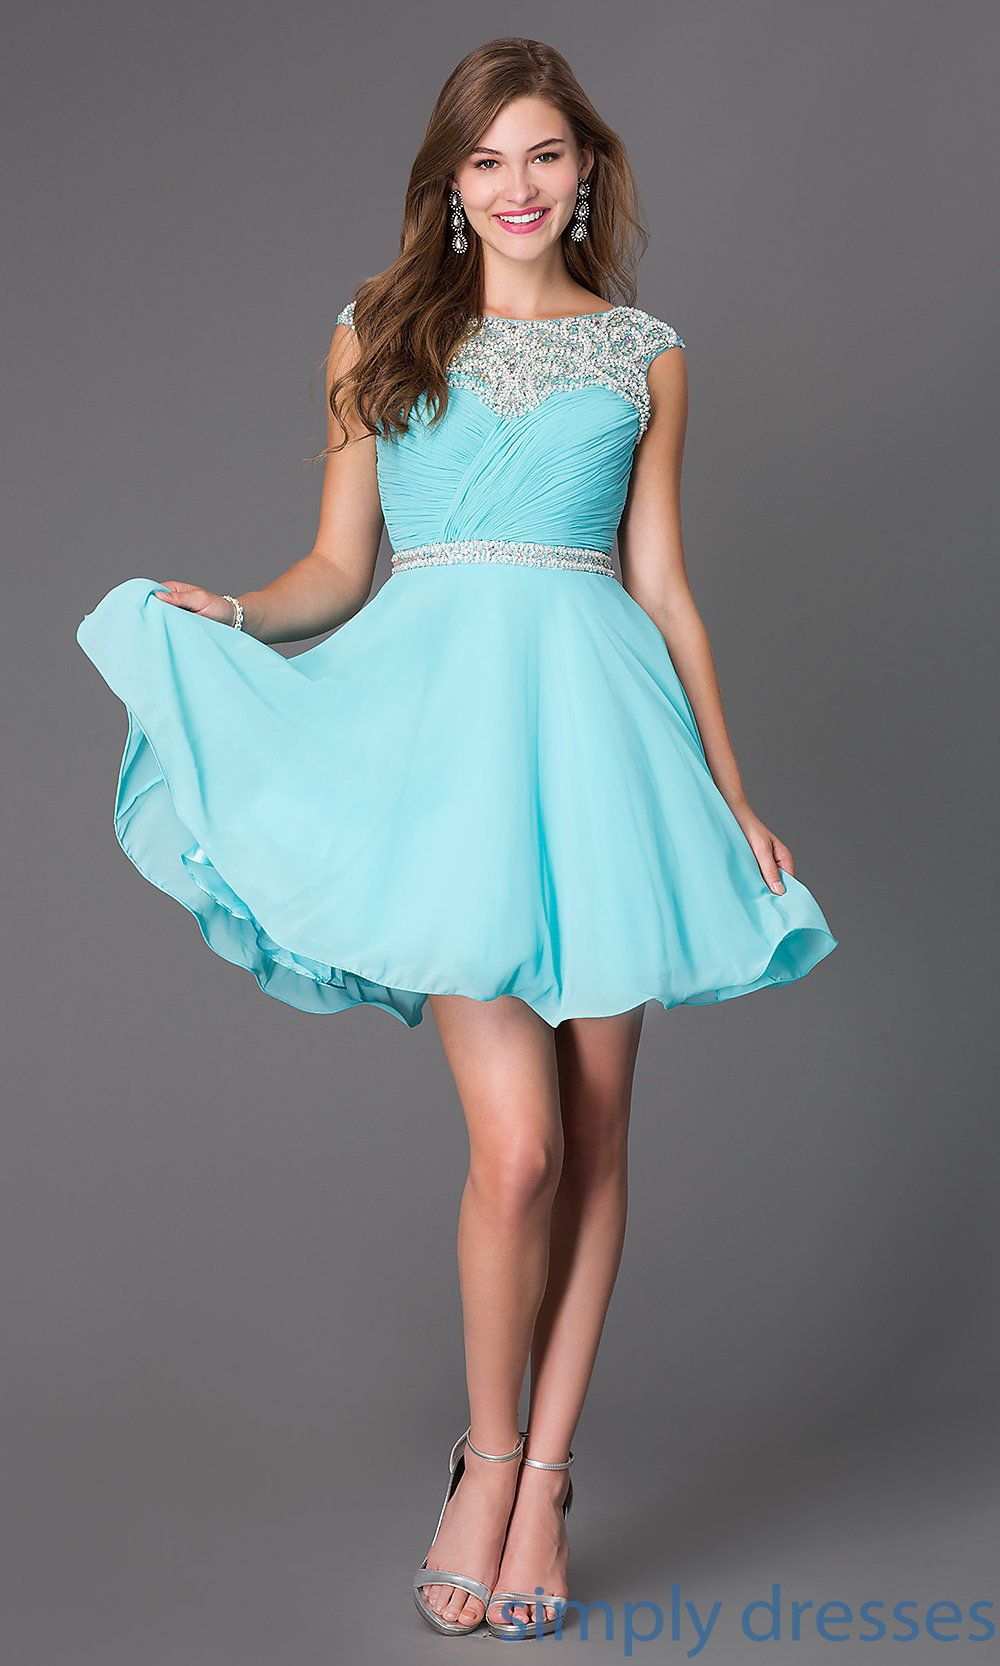 Homecoming Dresses, Formal Prom Dresses, Evening Wear: PO-7240 ...